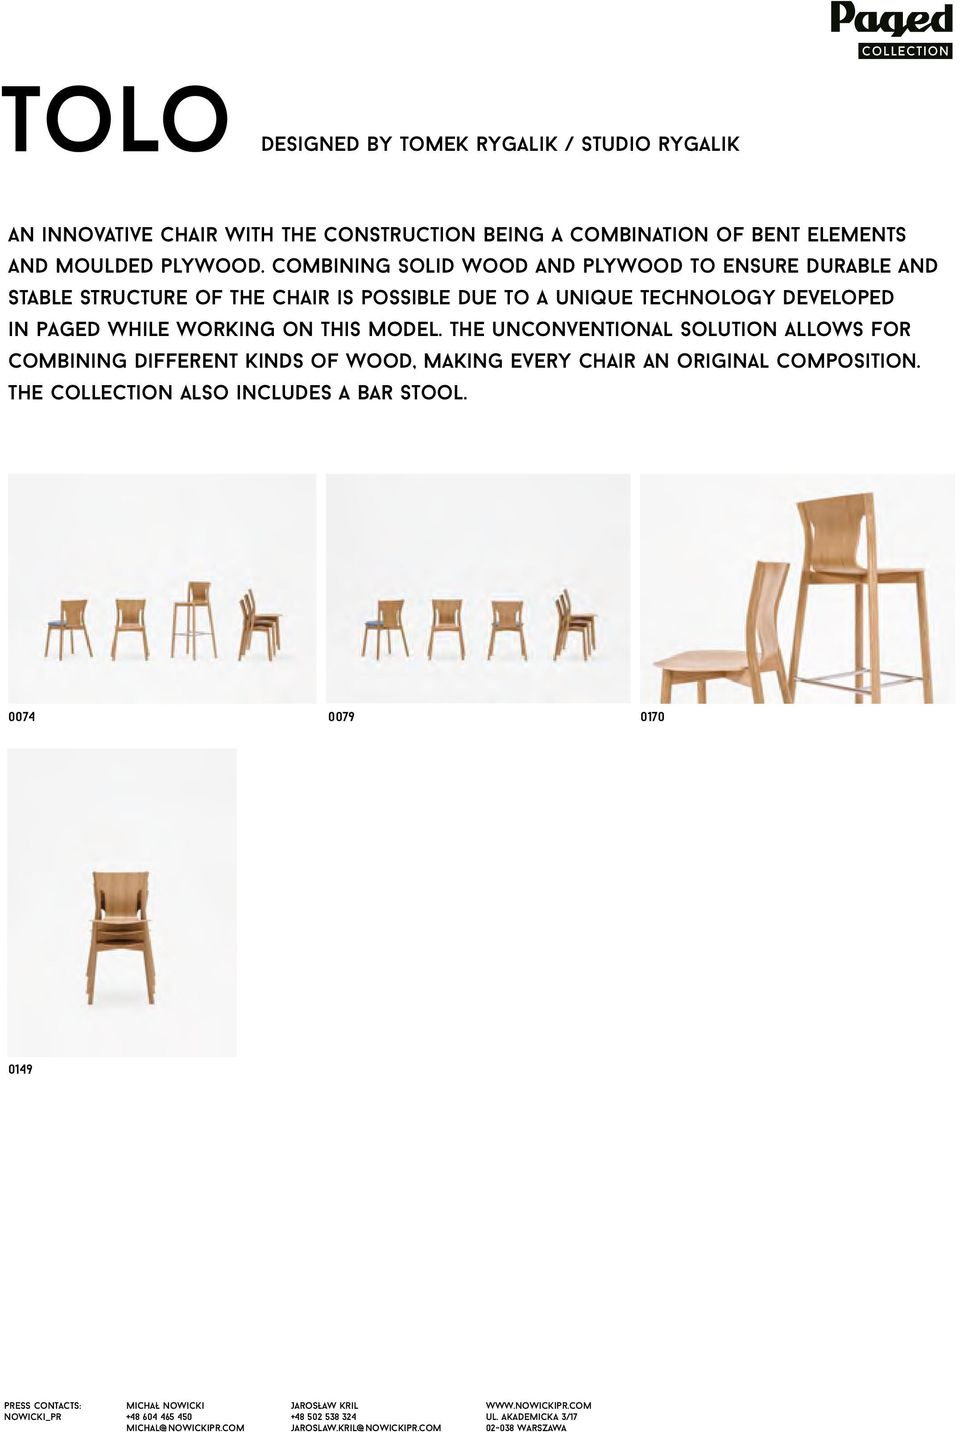 combining solid wood and plywood to ensure durable and stable structure of the chair is possible due to a unique technology